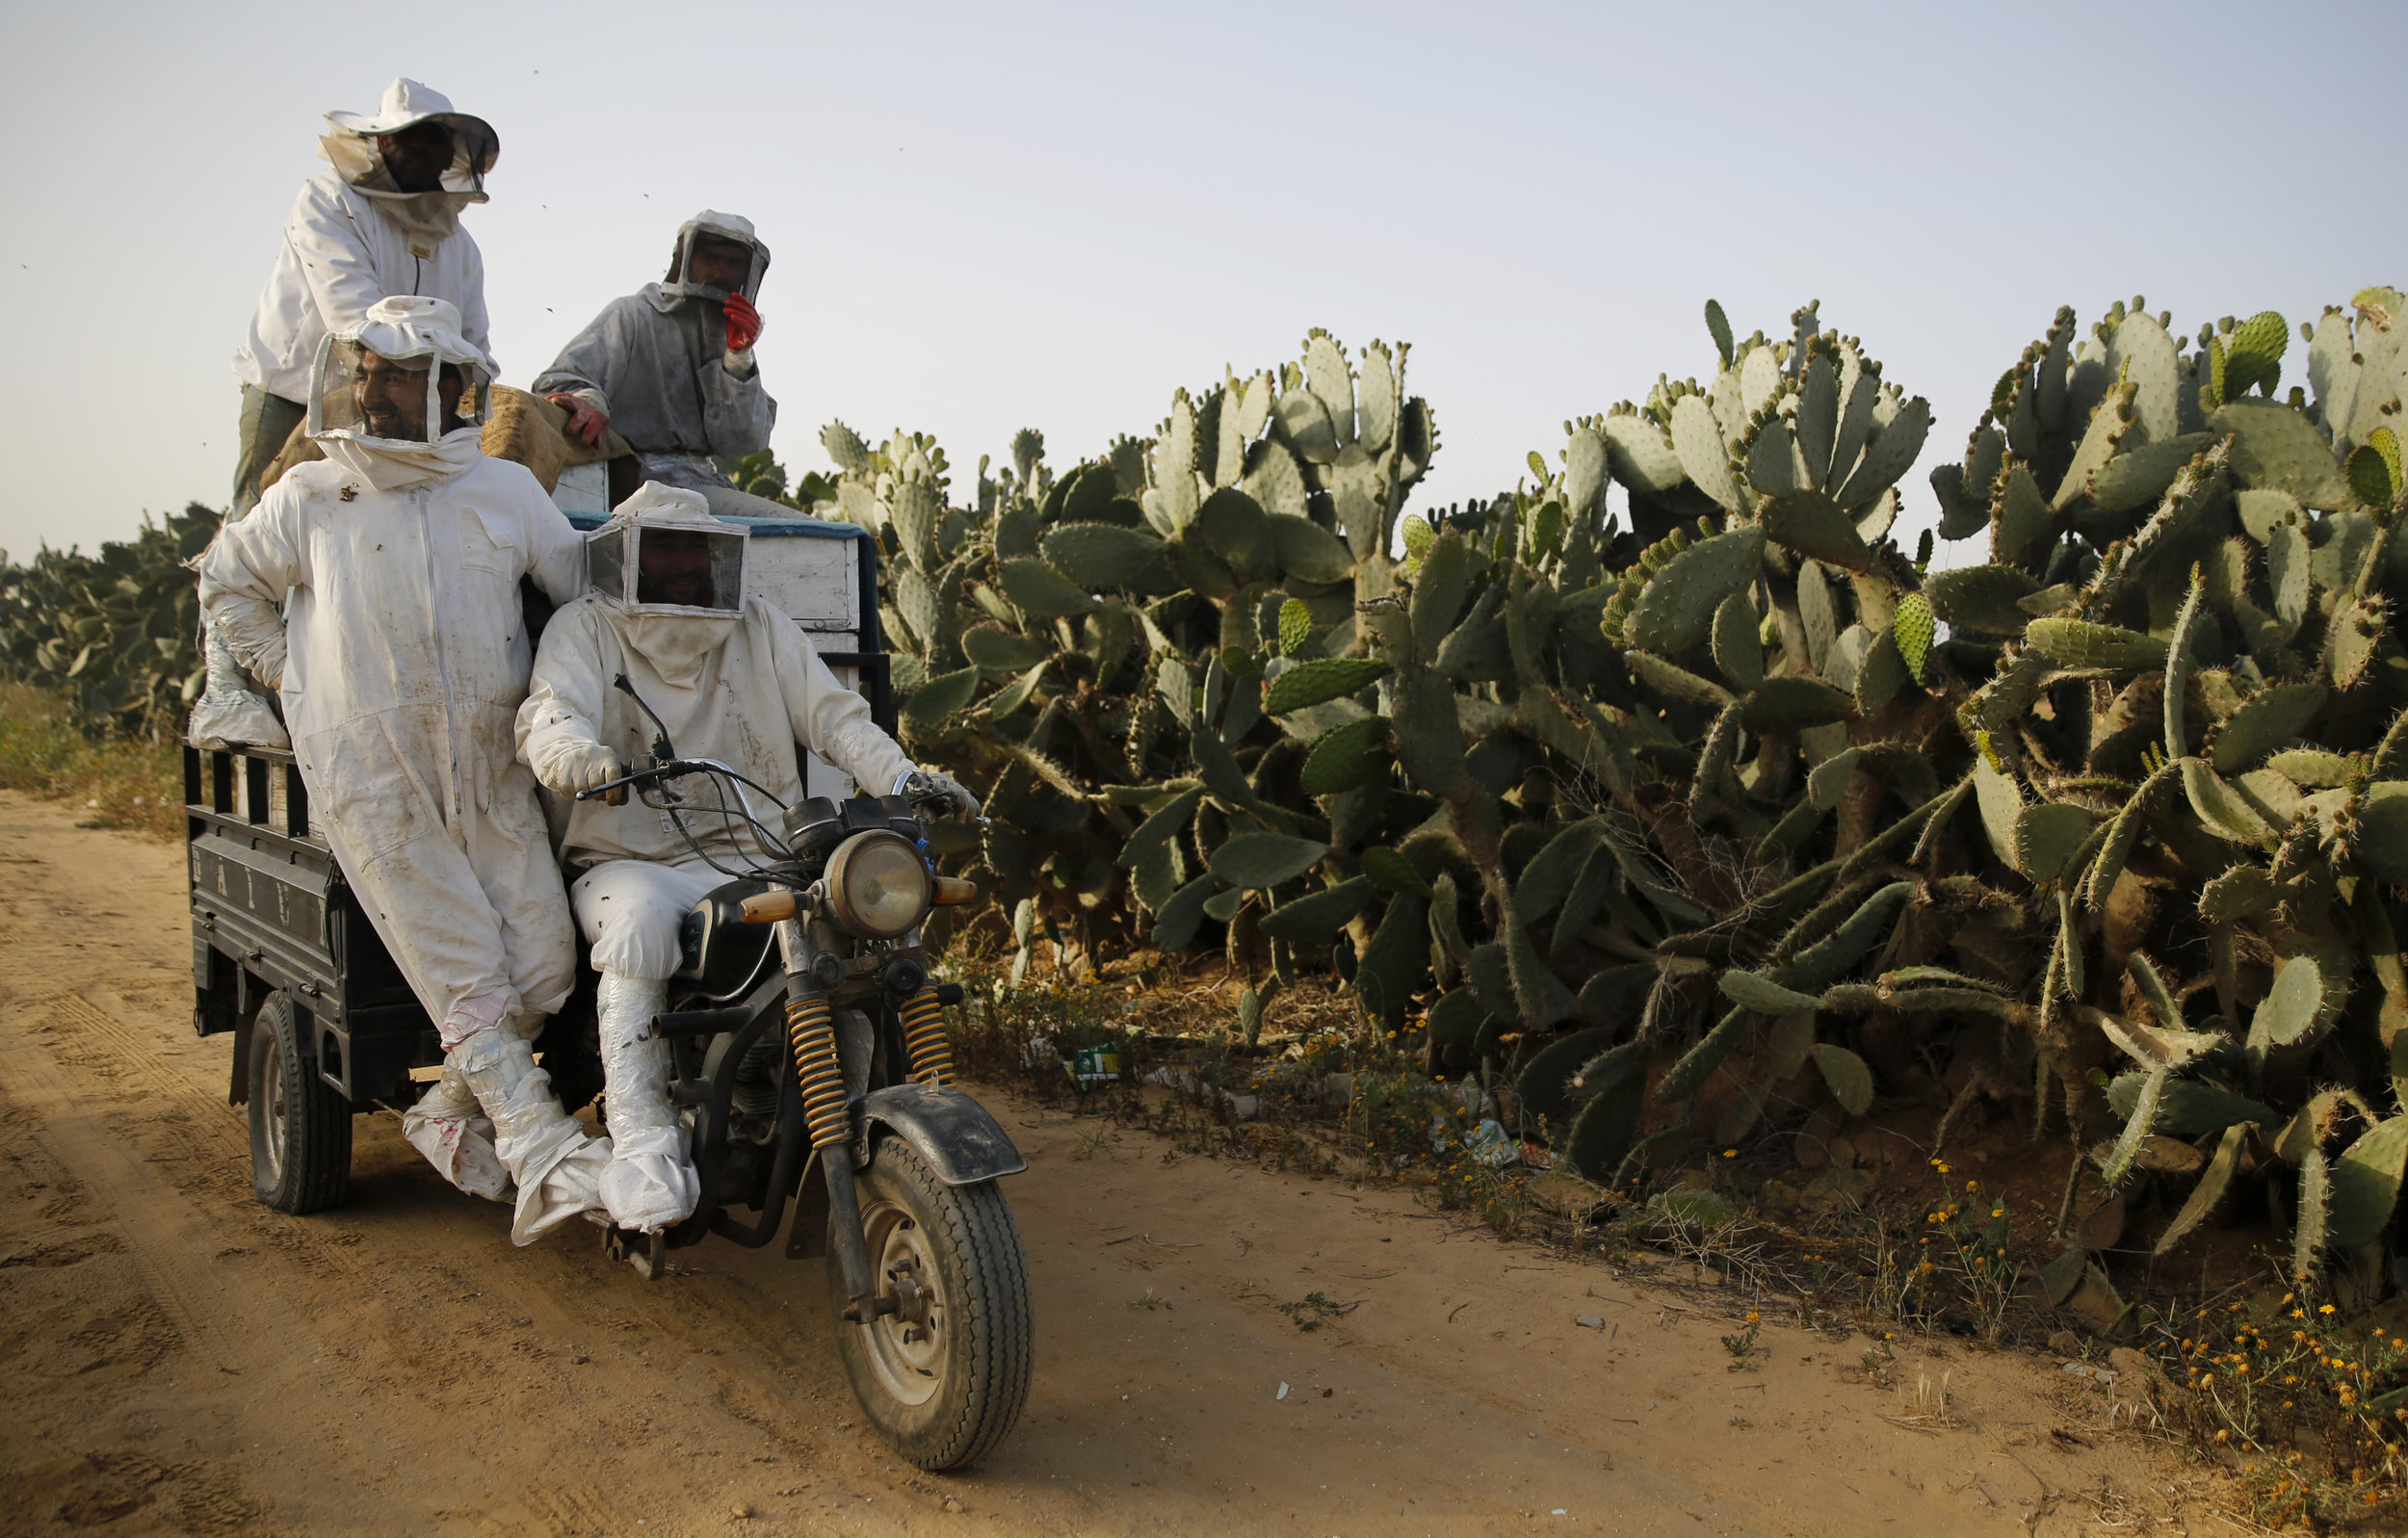 Palestinian beekeepers ride to a beehive during a day harvesting honey in east Khan Younis near the border with Israel, Thursday, April 25, 2019. (AP Photo/Hatem Moussa)